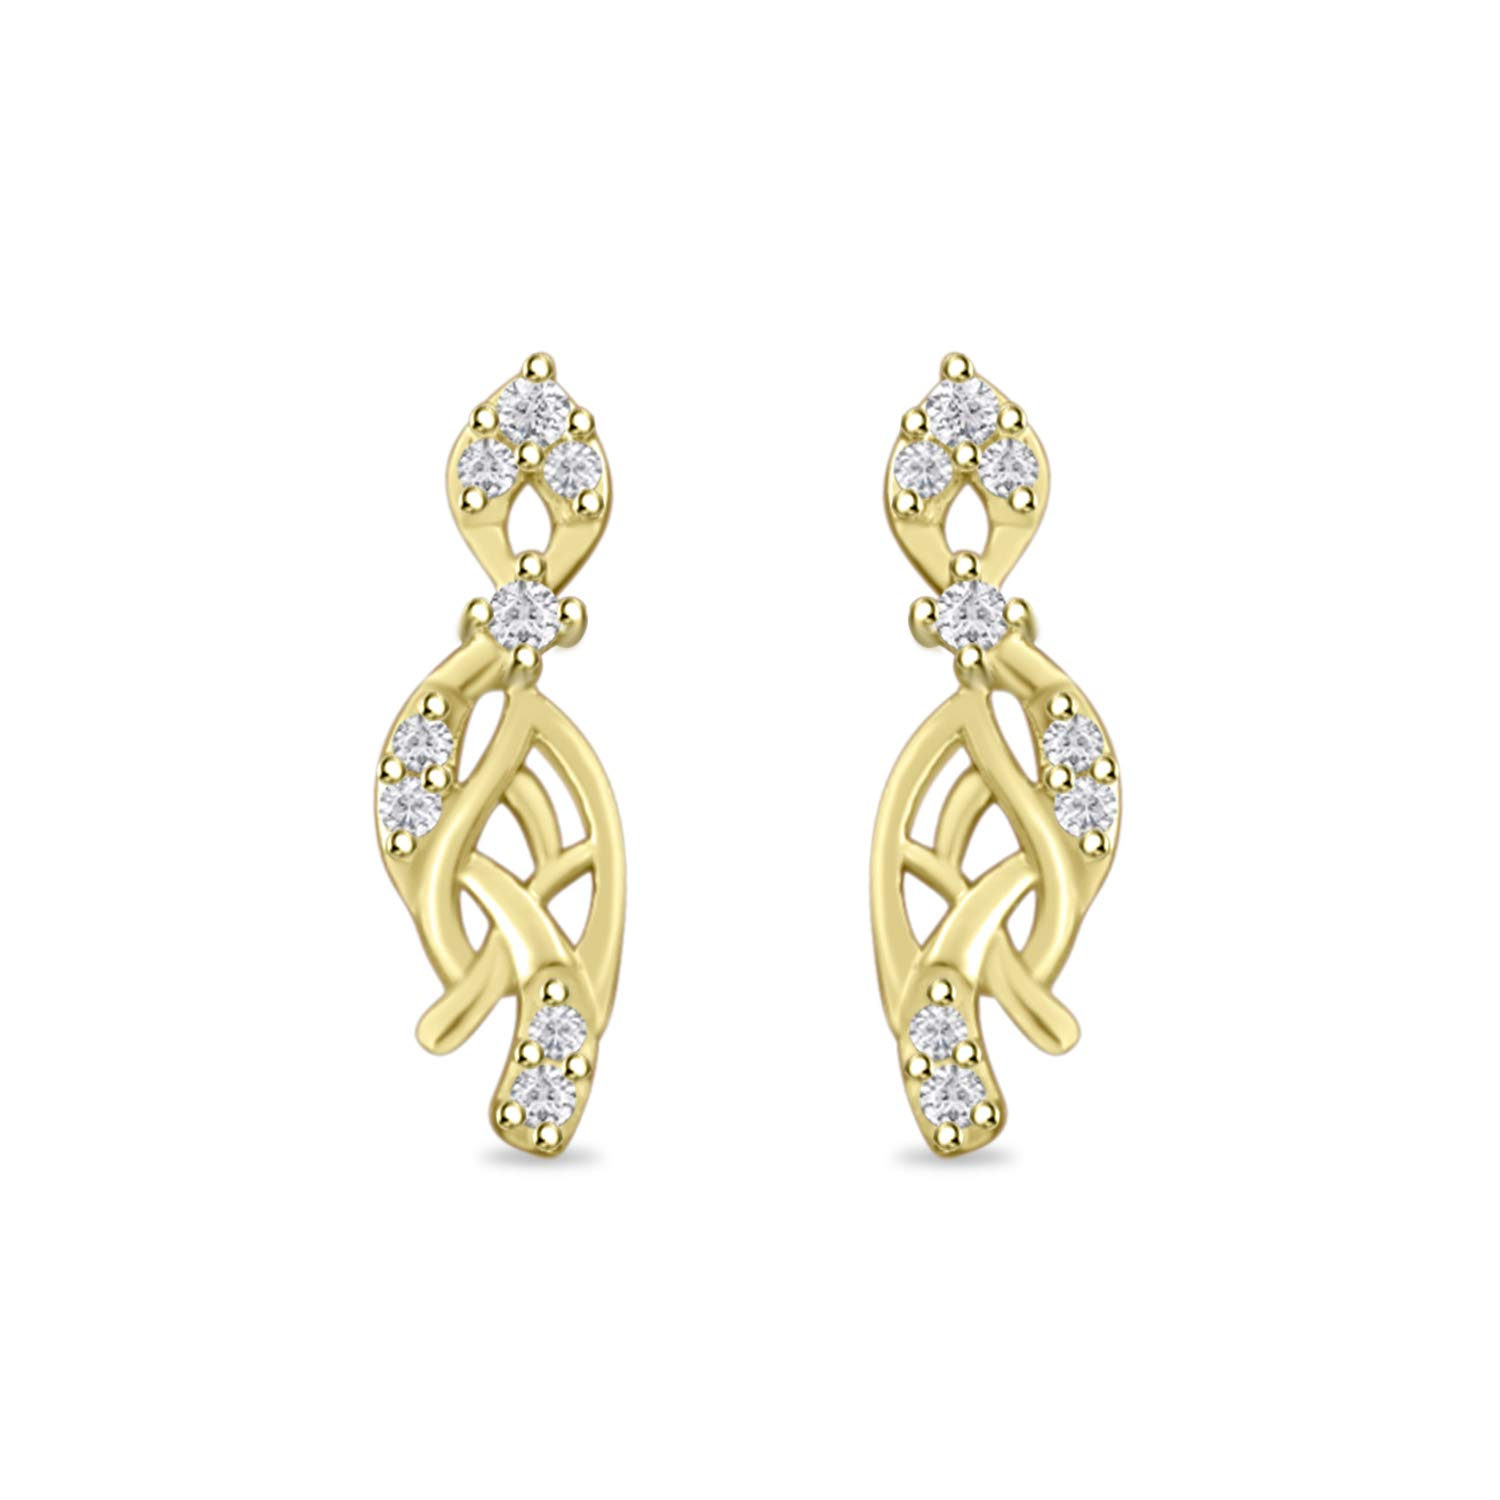 Round Cut Cubic Zirconia Cluster Fashion Stud Earring for Women Girls 14k Gold Plated